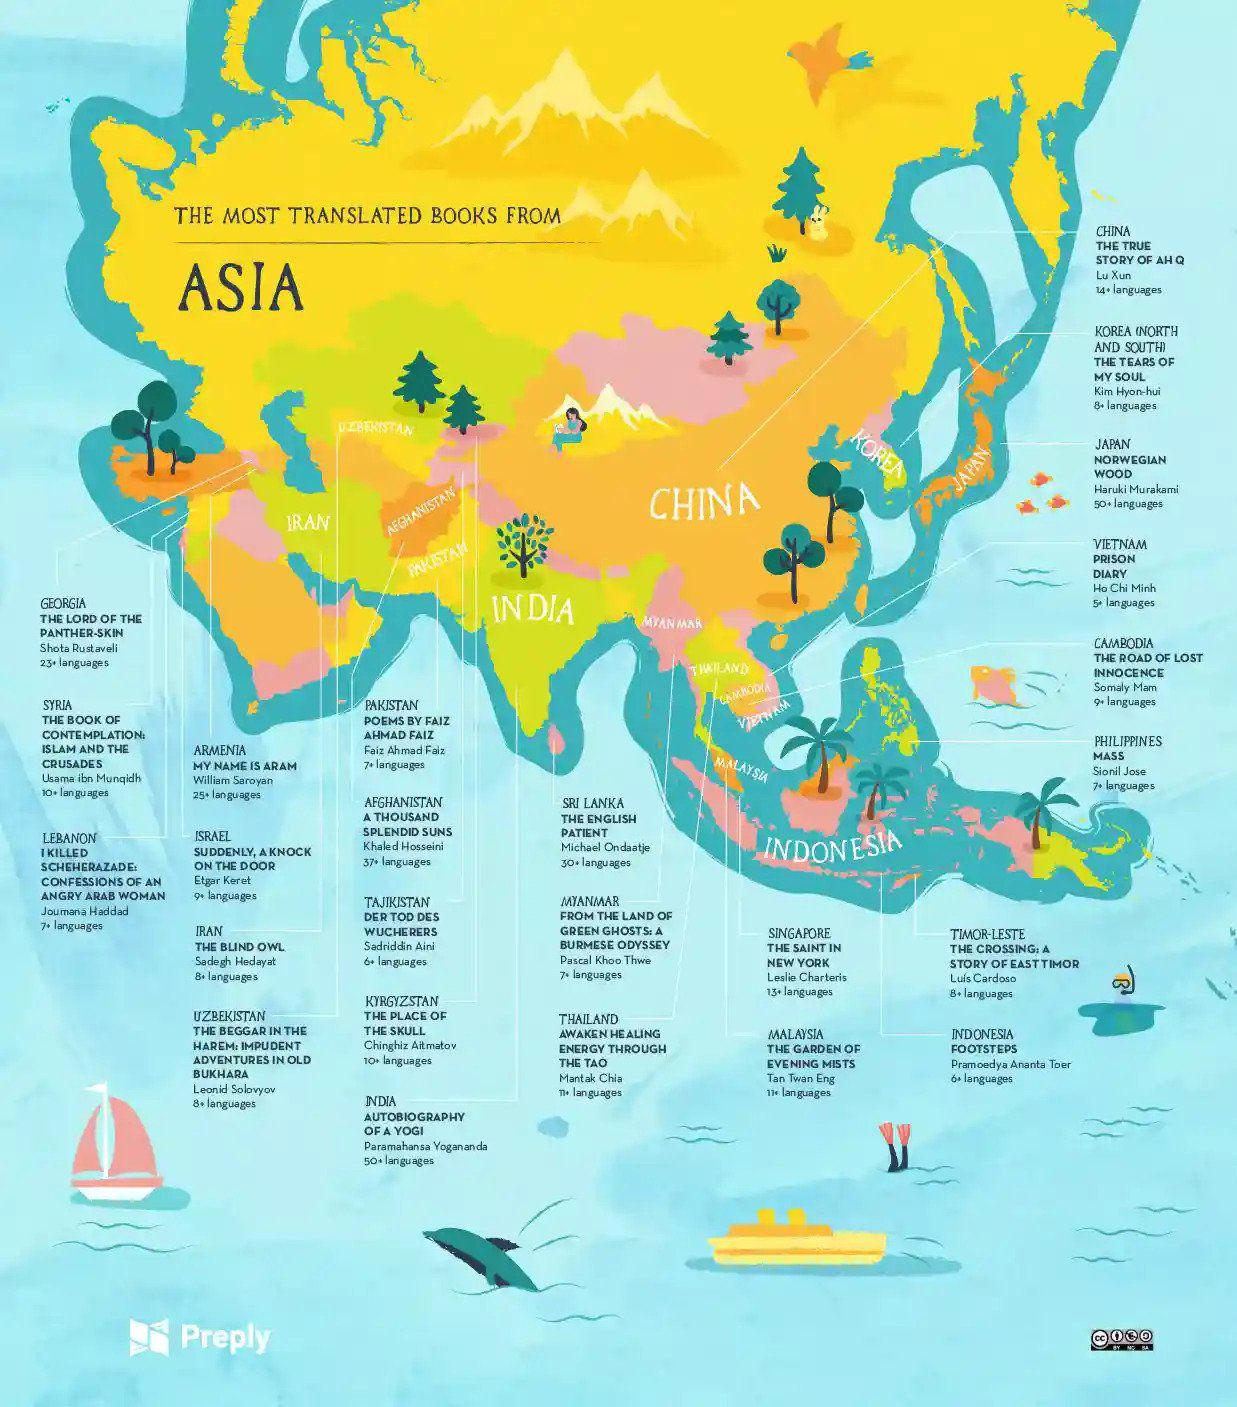 Most translated books from Asia map